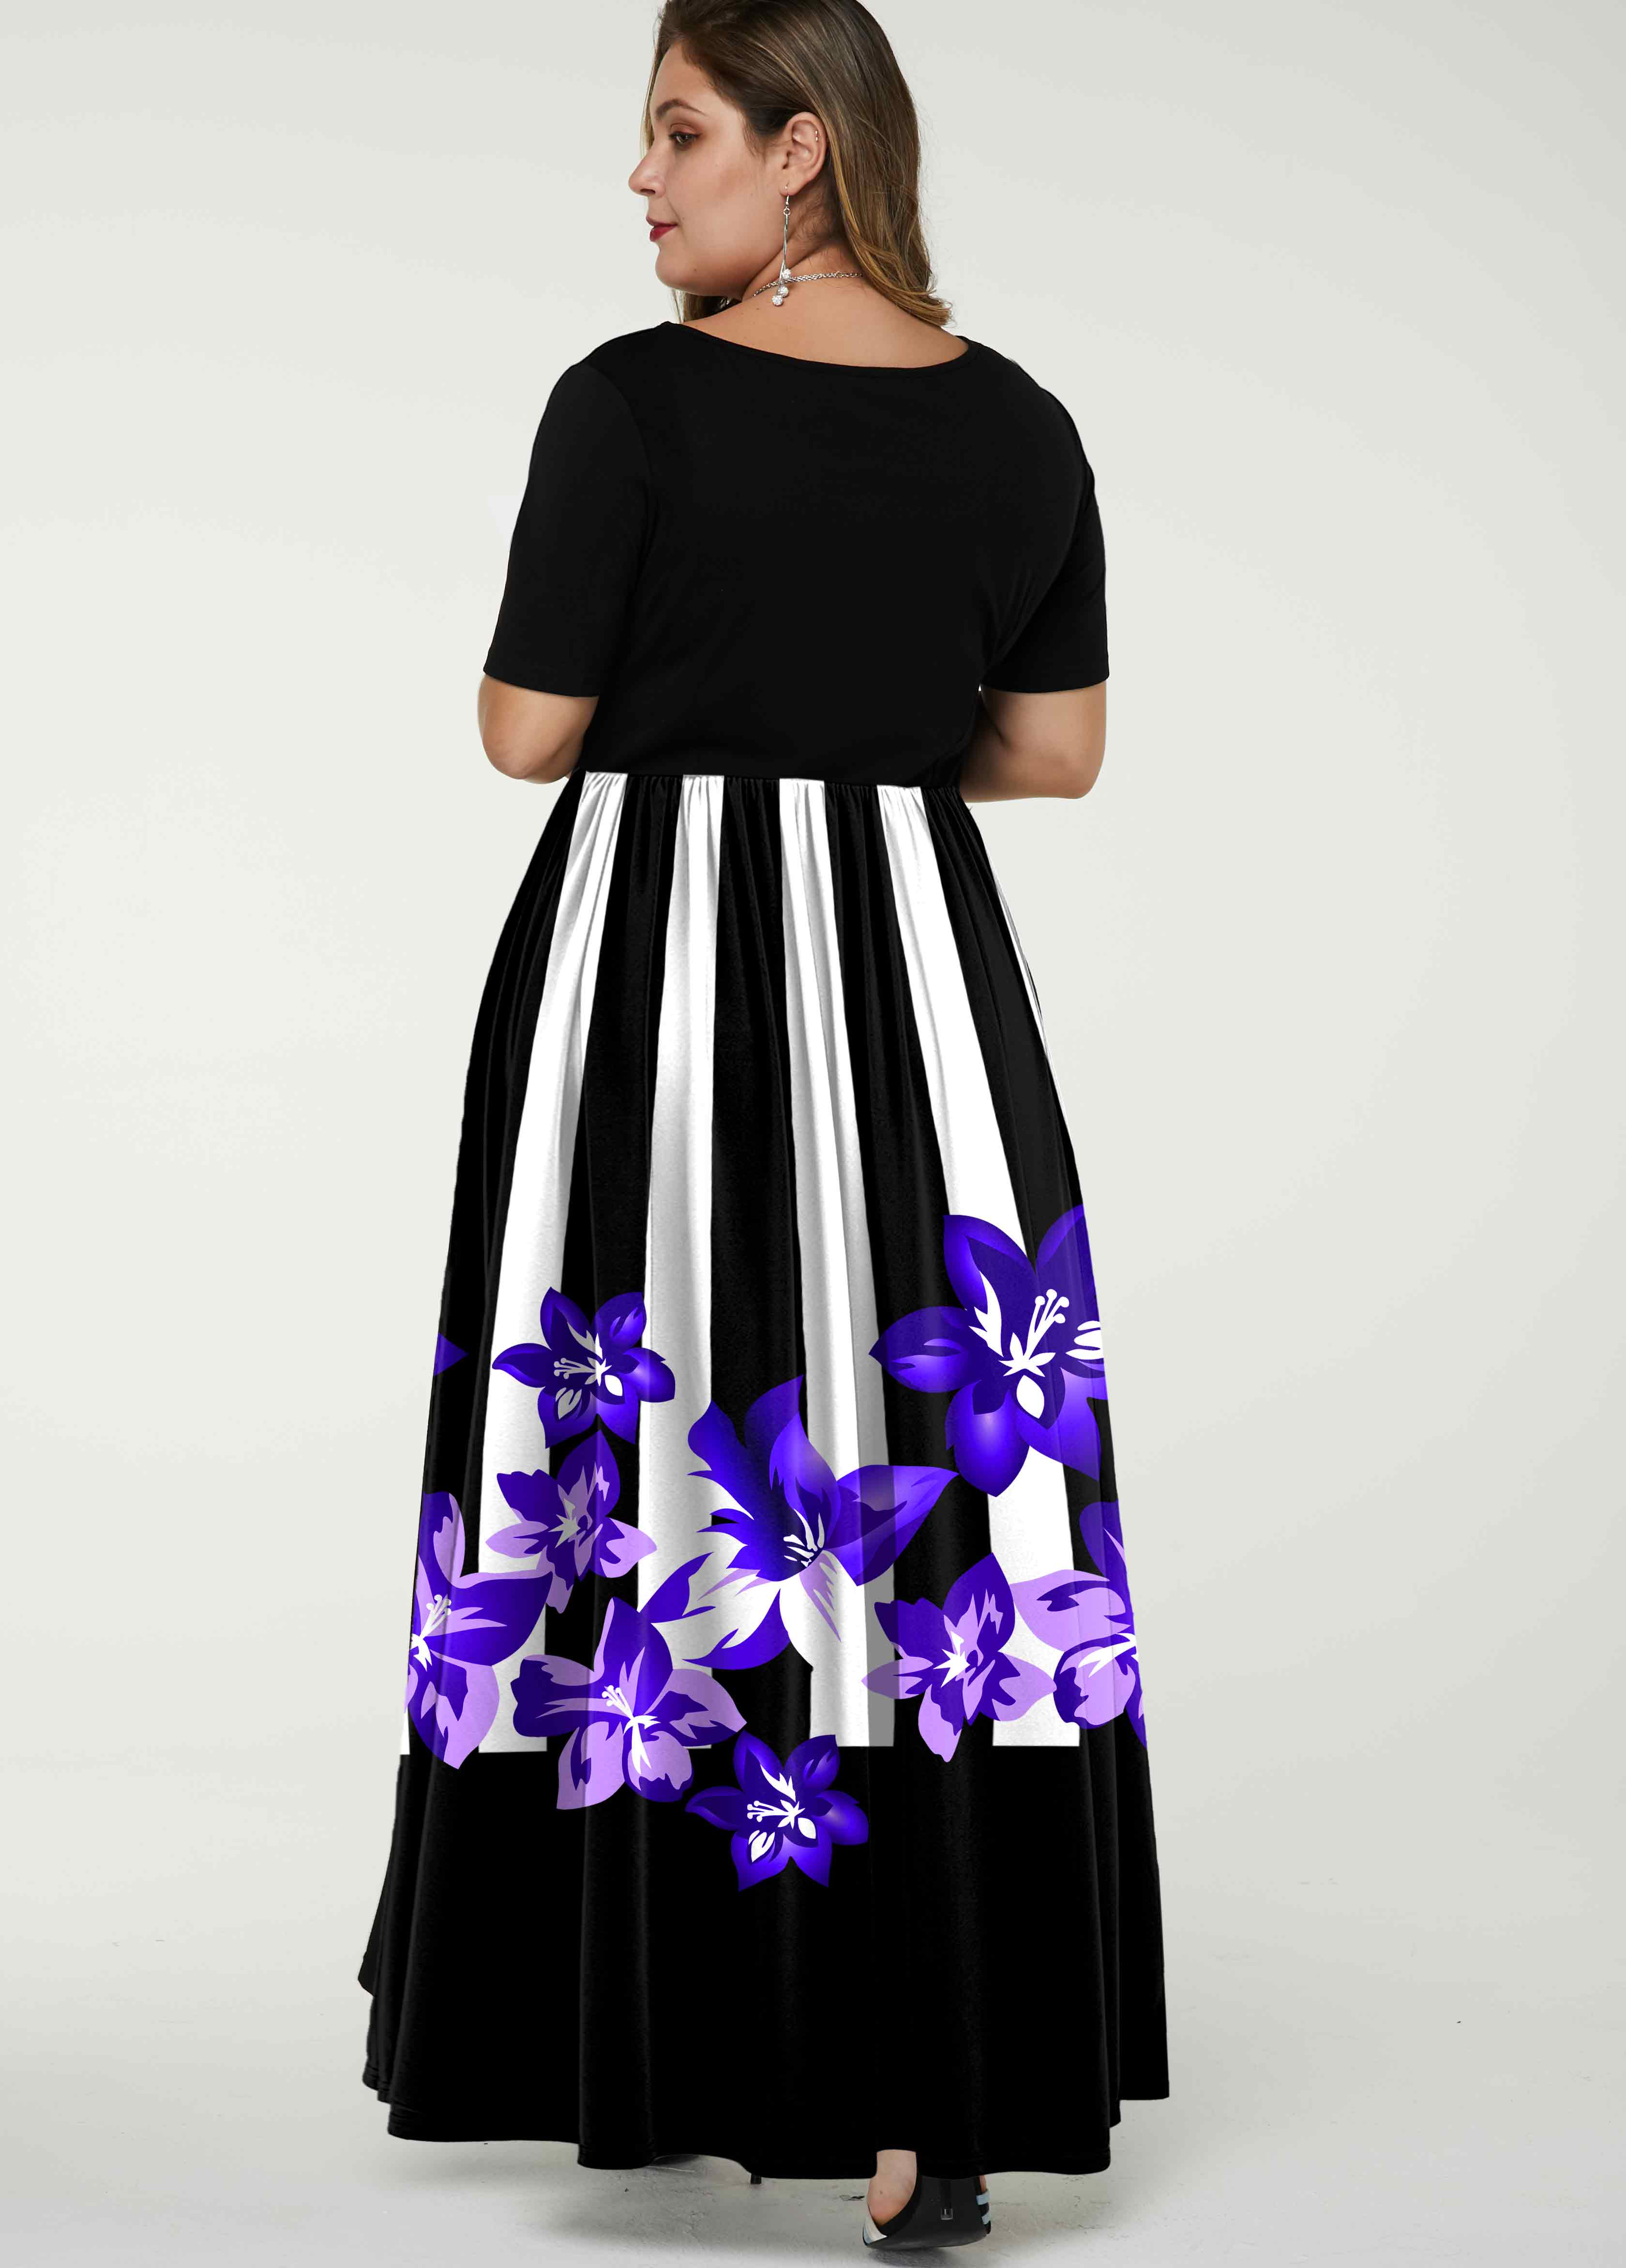 Stripe and Floral Print Plus Size Dress